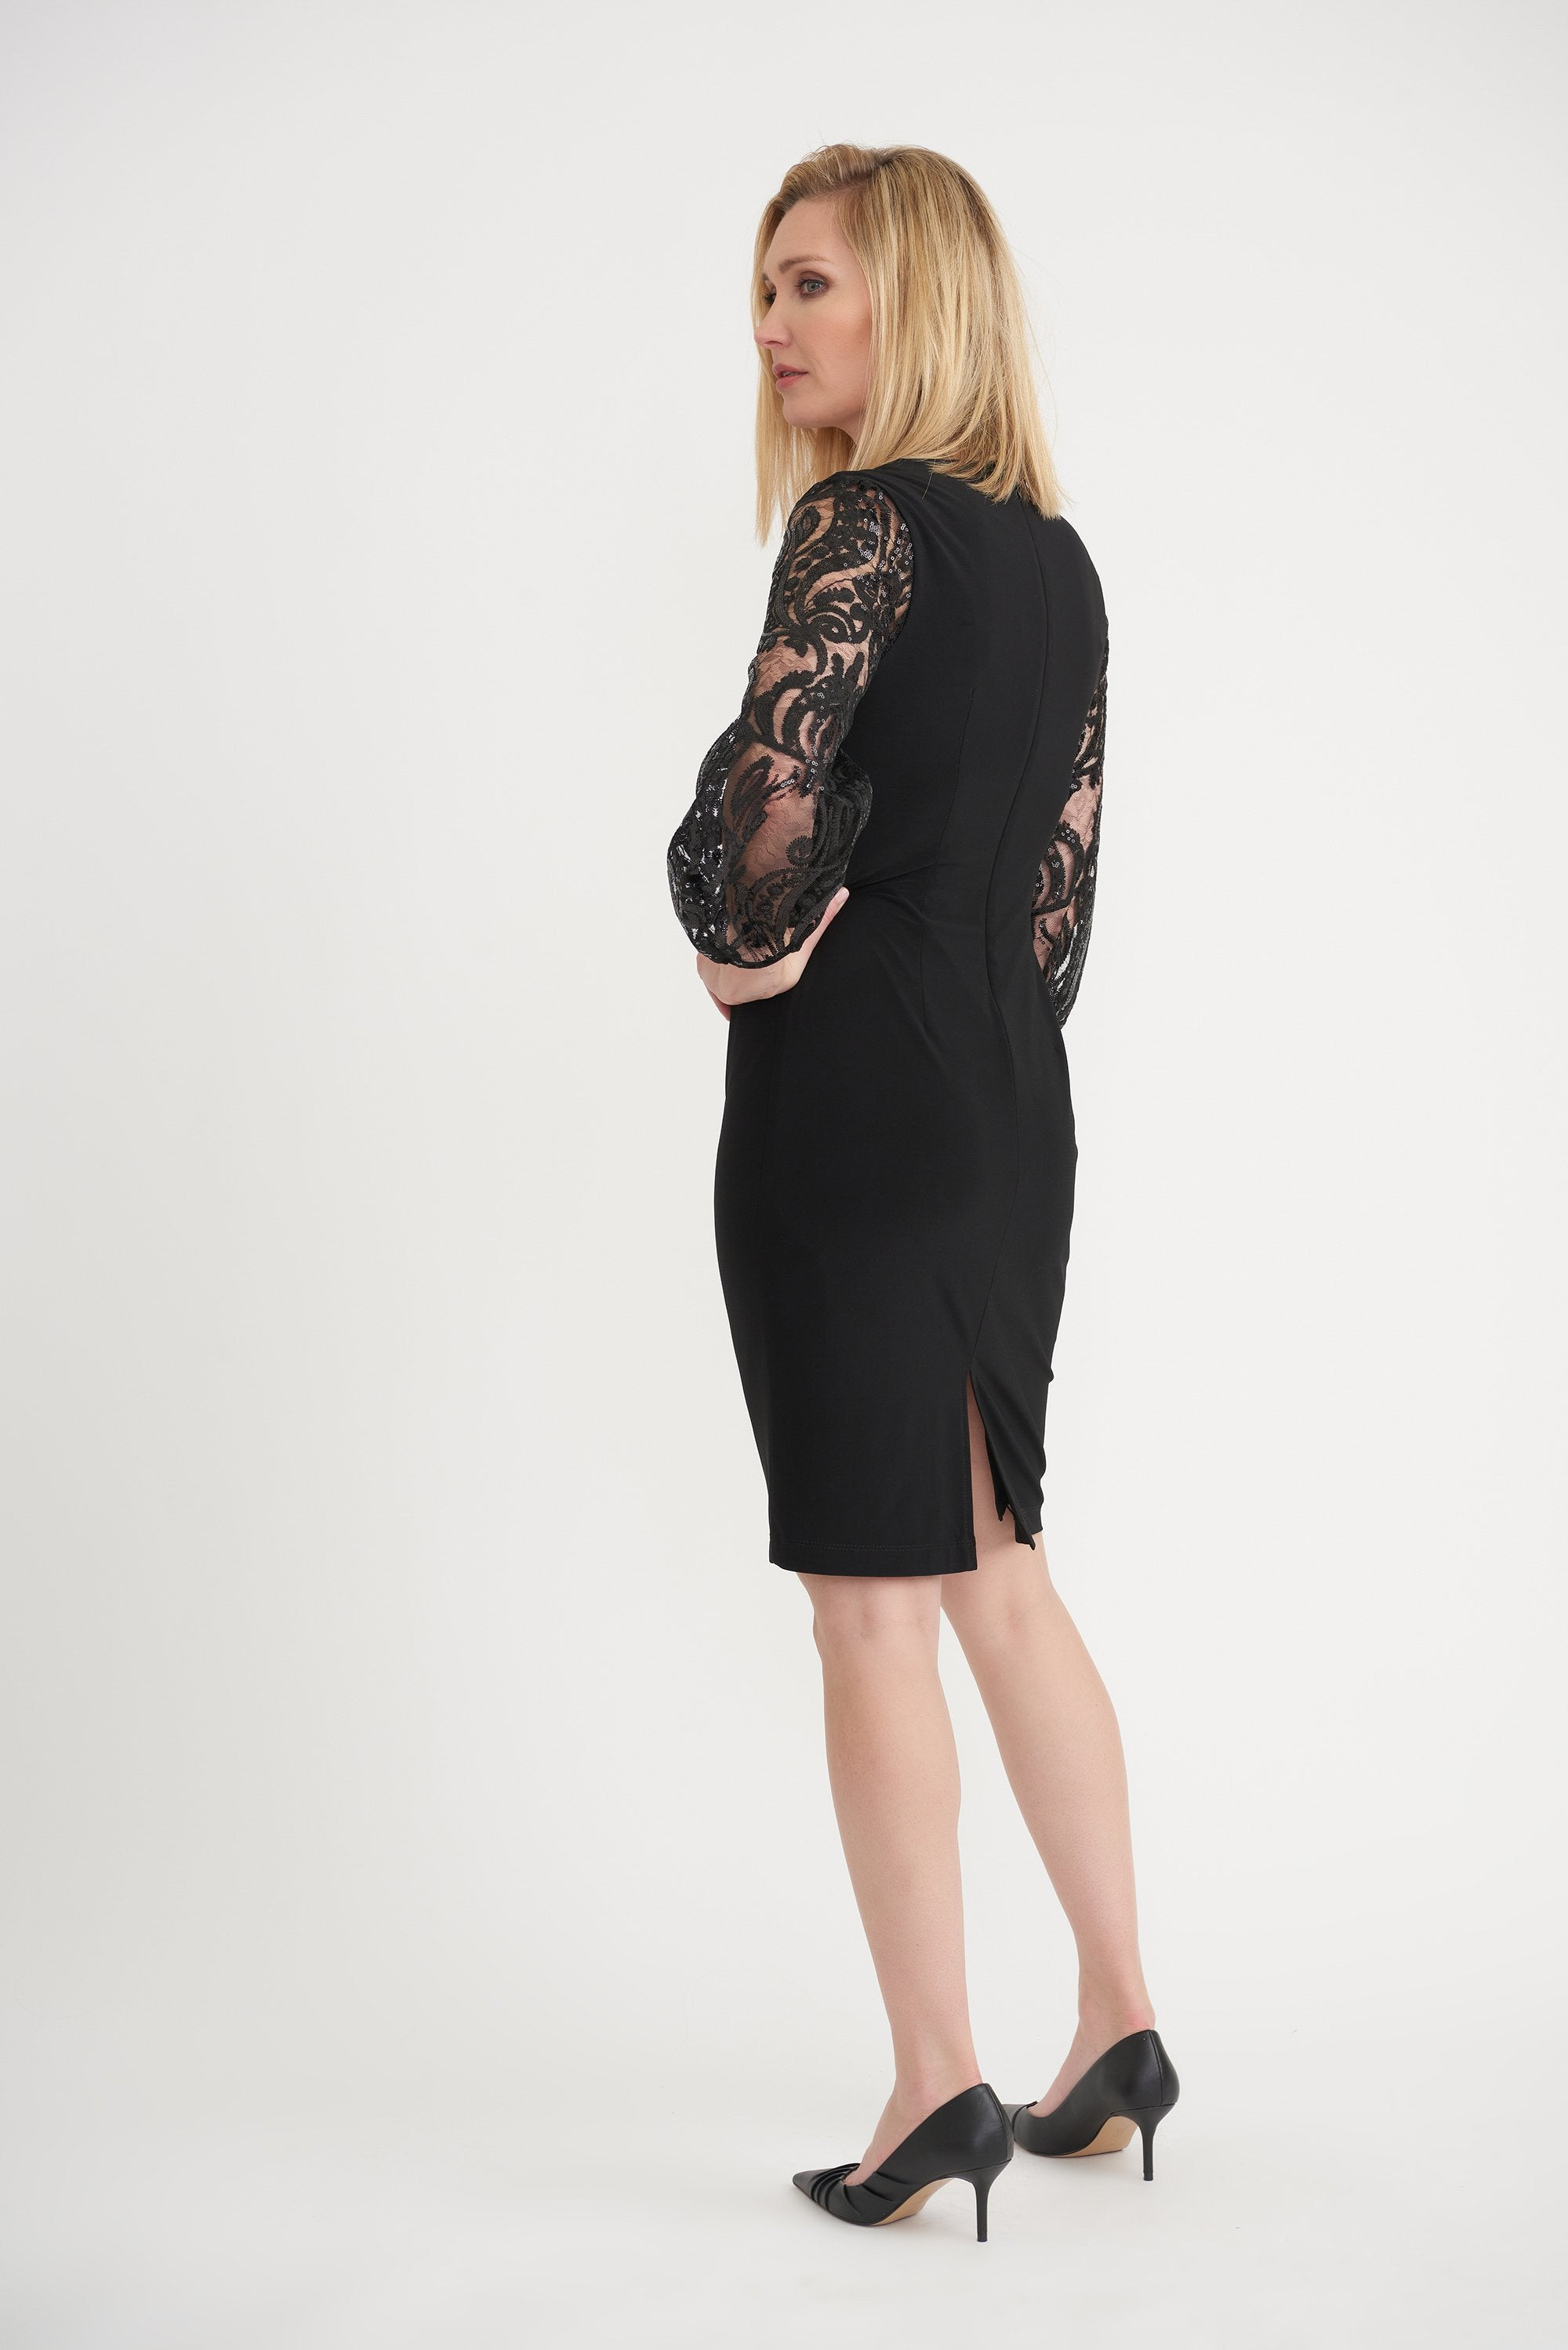 Image of Joseph Ribkoff Ladies Dress Black Style 203437